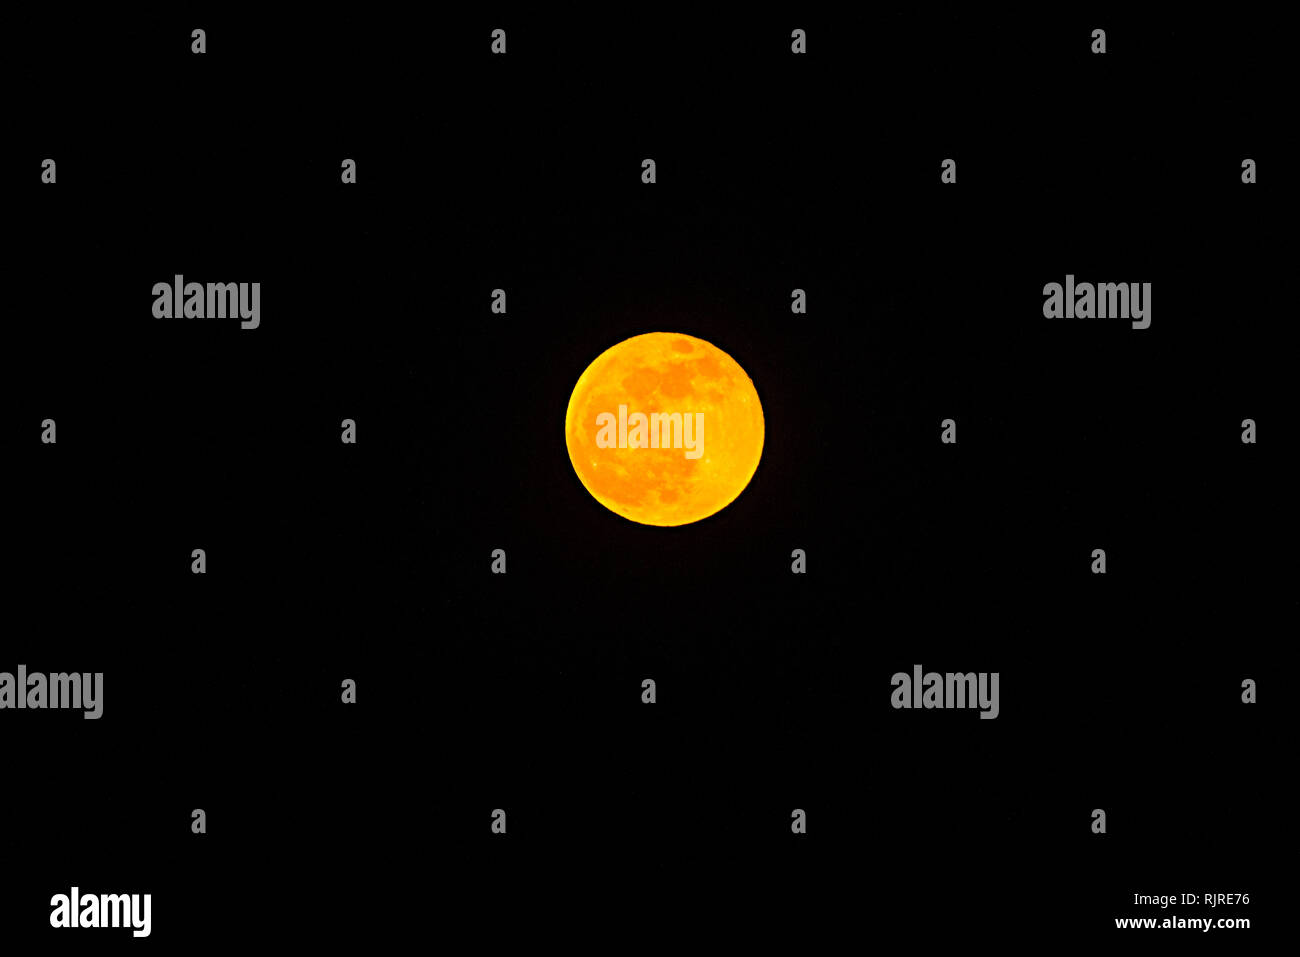 Super moon on the day of the total lunar eclipse on January 21, 2019 - Stock Image